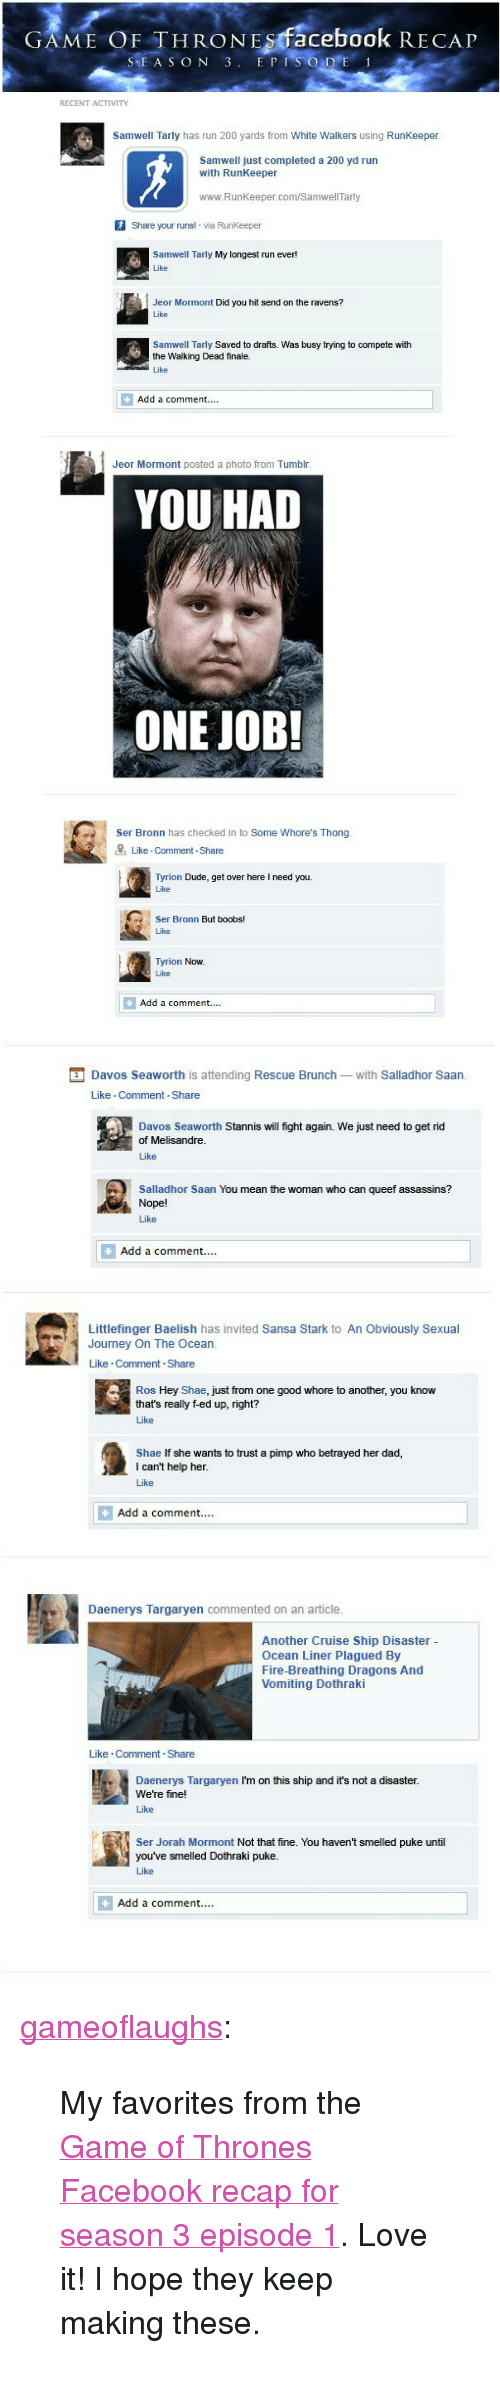 "Samwell Tarly: GAME OF THRONEs facebook RECAP  SEA S ON 3. E PI  RECENT ACTIVITY  Samwell Tarly has run 200 yards from White Walkers using RunKeeper  Samwell just completed a 200 yd run  with RunKeeper  www.RunKeeper.com/Samwell Tarly  Share your runs! via RunKeeper  Samwell Tarly My longest run ever!  Like  Jeor Mormont Did you hit send on the ravens?  Like  Samwell Tarly Saved to drafts. Was busy trying to compete with  the Walking Dead finale.  Add a comment....  Jeor Mormont posted a photo from Tumblr  YOU HAD  ONE JOB!  Ser Bronn has checked in to Some Whore's Thong  Like Comment Share  Tyrion Dude, get over here I need you.  Like  Ser Bronn But boobs!  Like  Tyrion Now  Like  Add a comment....   Davos Seaworth is attending Rescue Brunch-with Salladhor Saan  Like Comment Share  Davos Seaworth Stannis will fight again. We just need to get rid  of Melisandre  Like  Salladhor Saan You mean the woman who can queef assassins?  Nope!  Like  Add a comment.  Littlefinger Baelish has invited Sansa Stark to An Obviously Sexual  Journey On The Ocean  Like Comment.Share  Ros Hey Shae, just from one good whore to another, you know  that's really f-ed up, right?  Like  Shae If she wants to trust a pimp who betrayed her dad,  I can't help her  Like  Add a comment...  Daenerys Targaryen commented on an article  Another Cruise Ship Disaster -  Ocean Liner Plagued By  Fire-Breathing Dragons And  Vomiting Dothraki  Like Comment-Share  Daenerys Targaryen I'm on this ship and it's not a disaster  We're fine!  Like  Ser Jorah Mormont Not that fine. You haven't smelled puke until  you've smelled Dothraki puke  Like  Add a comment.... <p><a class=""tumblr_blog"" href=""http://gameoflaughs.tumblr.com/post/47800967525/if-game-of-thrones-season-3-episode-1-were-on-facebook"">gameoflaughs</a>:</p> <blockquote> <p>My favorites from the <a href=""http://www.happyplace.com/22775/game-of-thrones-facebook-recap-season-3-episode-1"">Game of Thrones Facebook recap for season 3 episode 1</a>. Love it! I hope they keep making these.</p> </blockquote>"